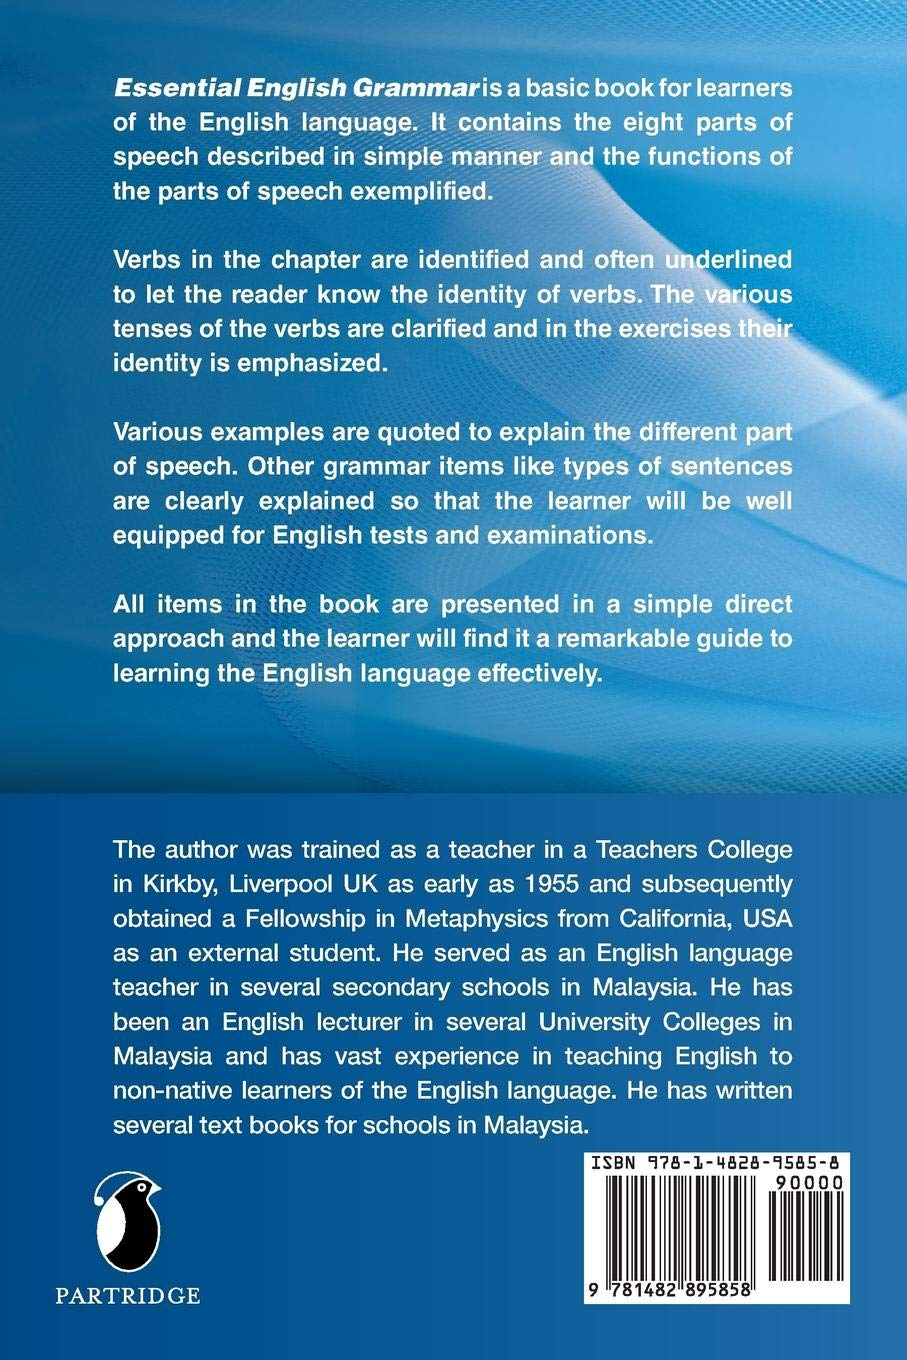 ESSENTIAL ENGLISH GRAMMAR: Amazon co uk: Raju Suppiah: 9781482895858